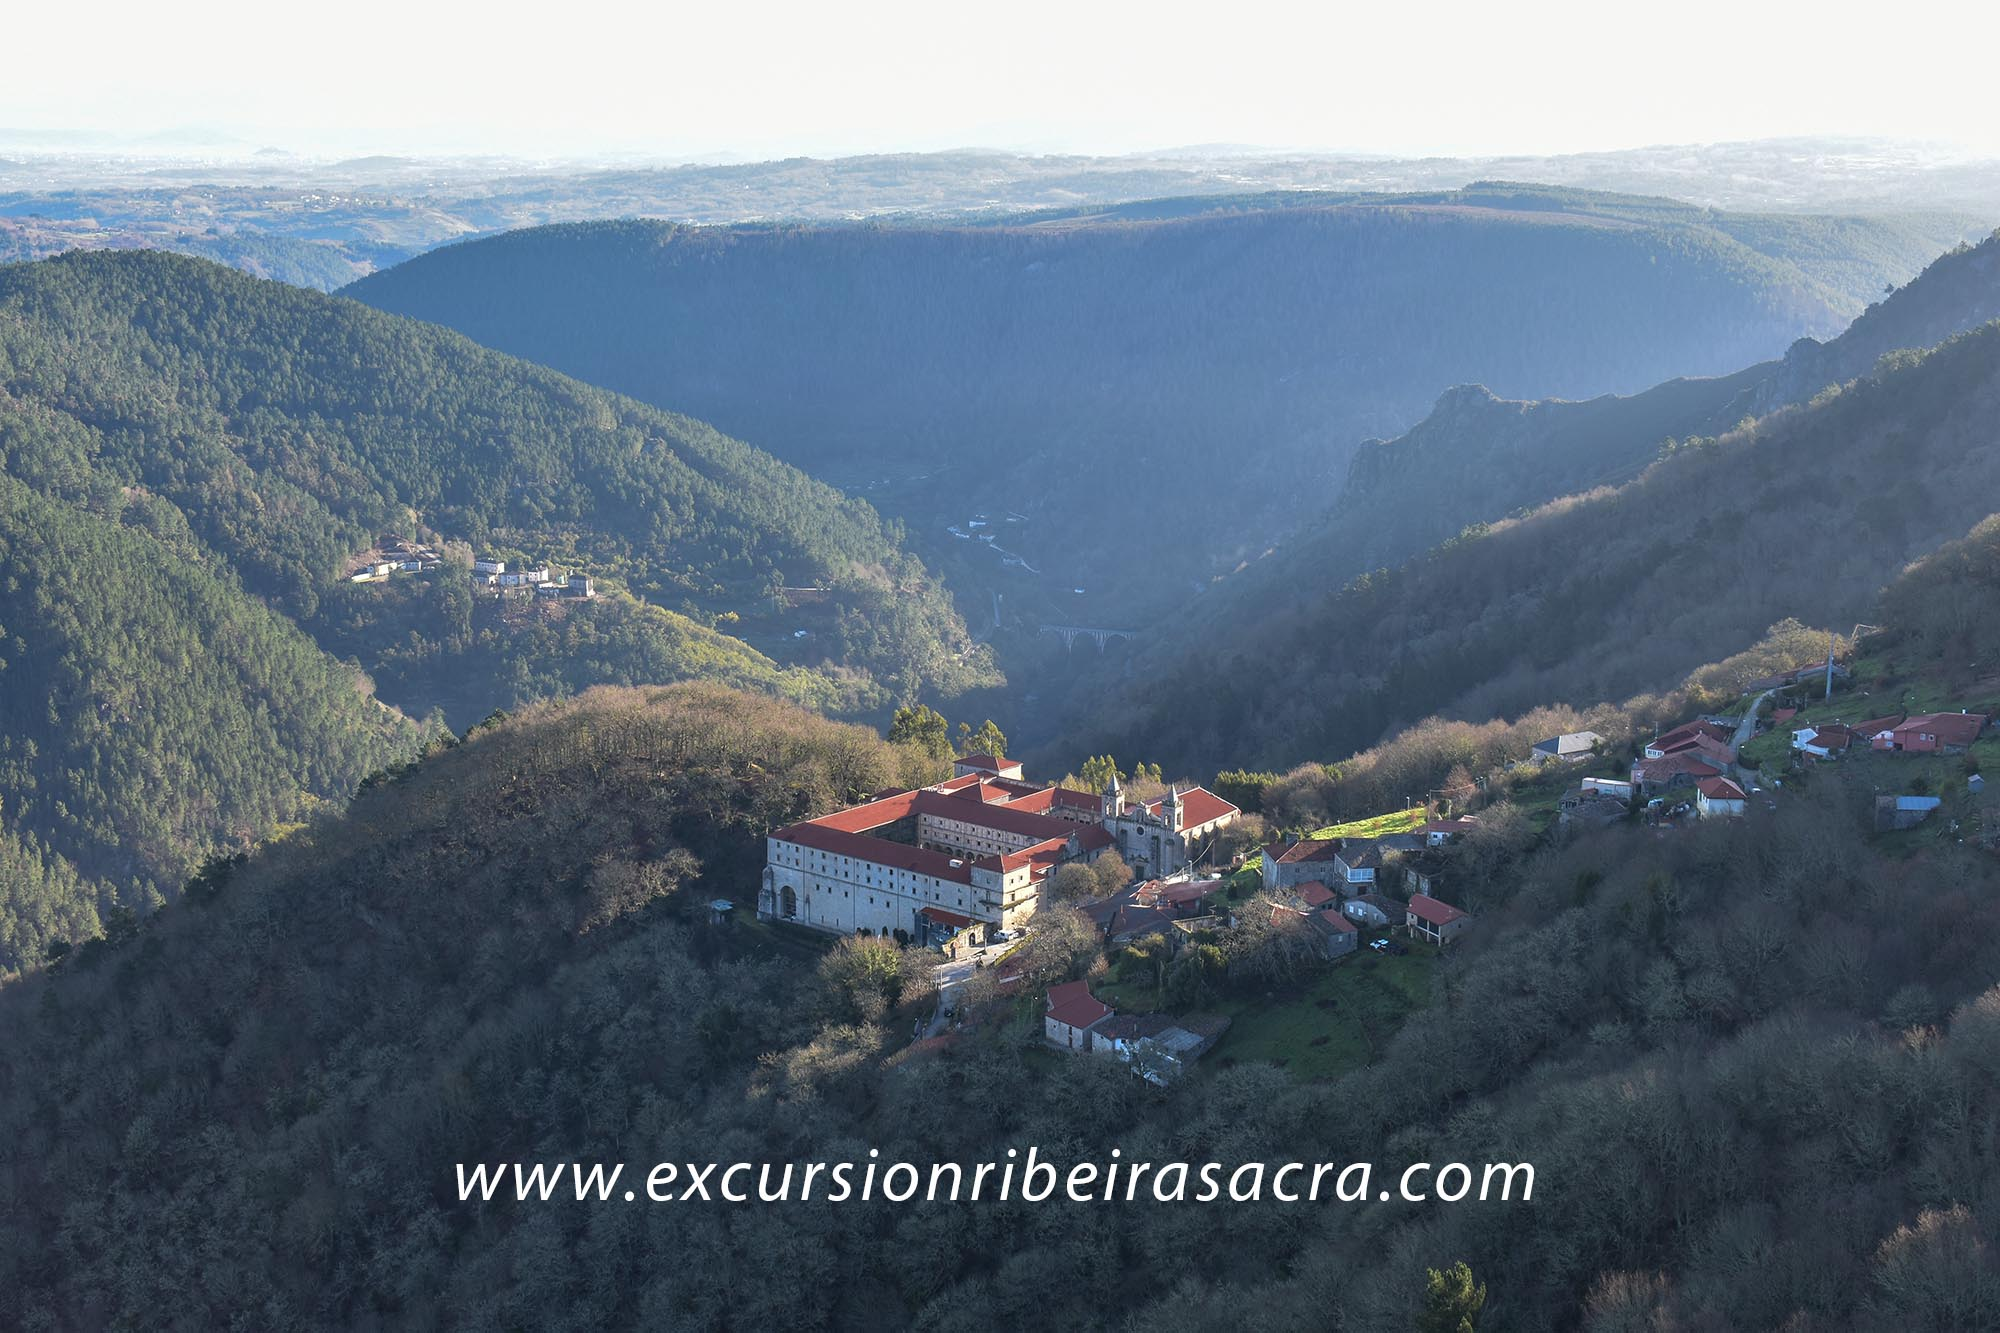 Regular Tours to Ribeira Sacra